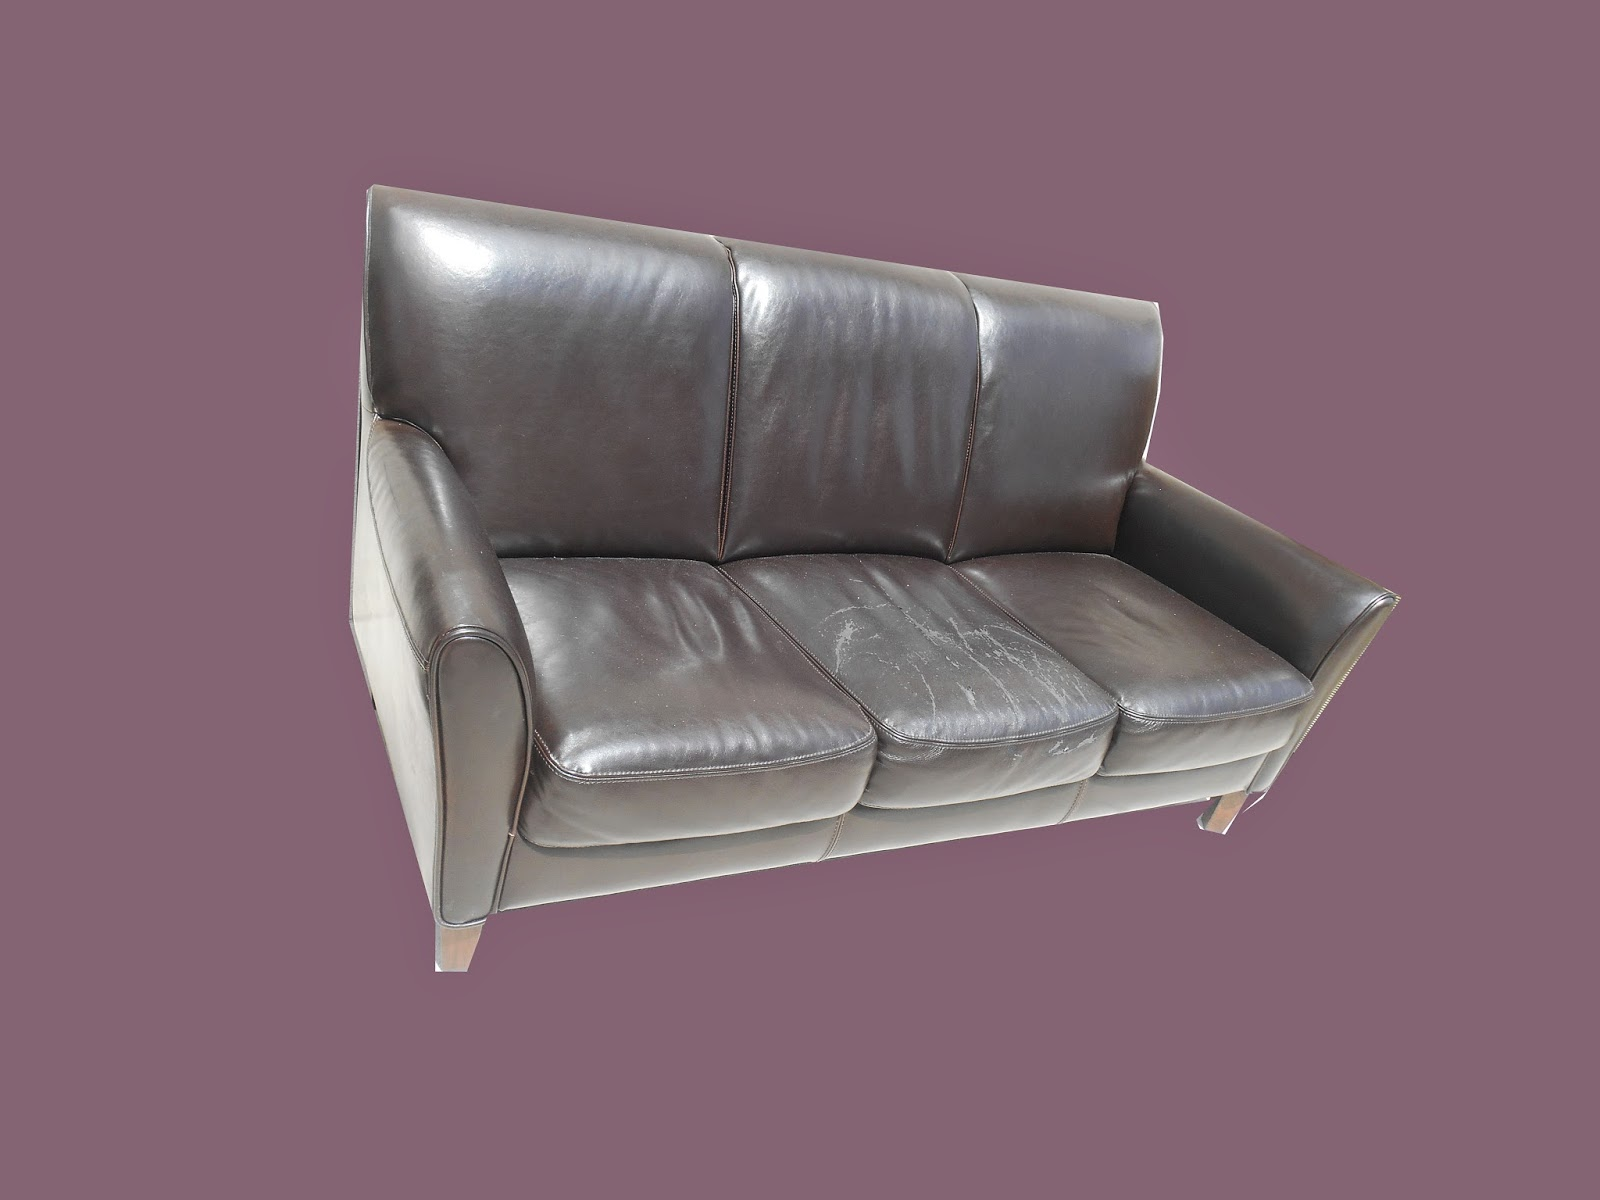 Where To Donate Sectional Sofa Simple Set Designs In India 2 Pieces - $325